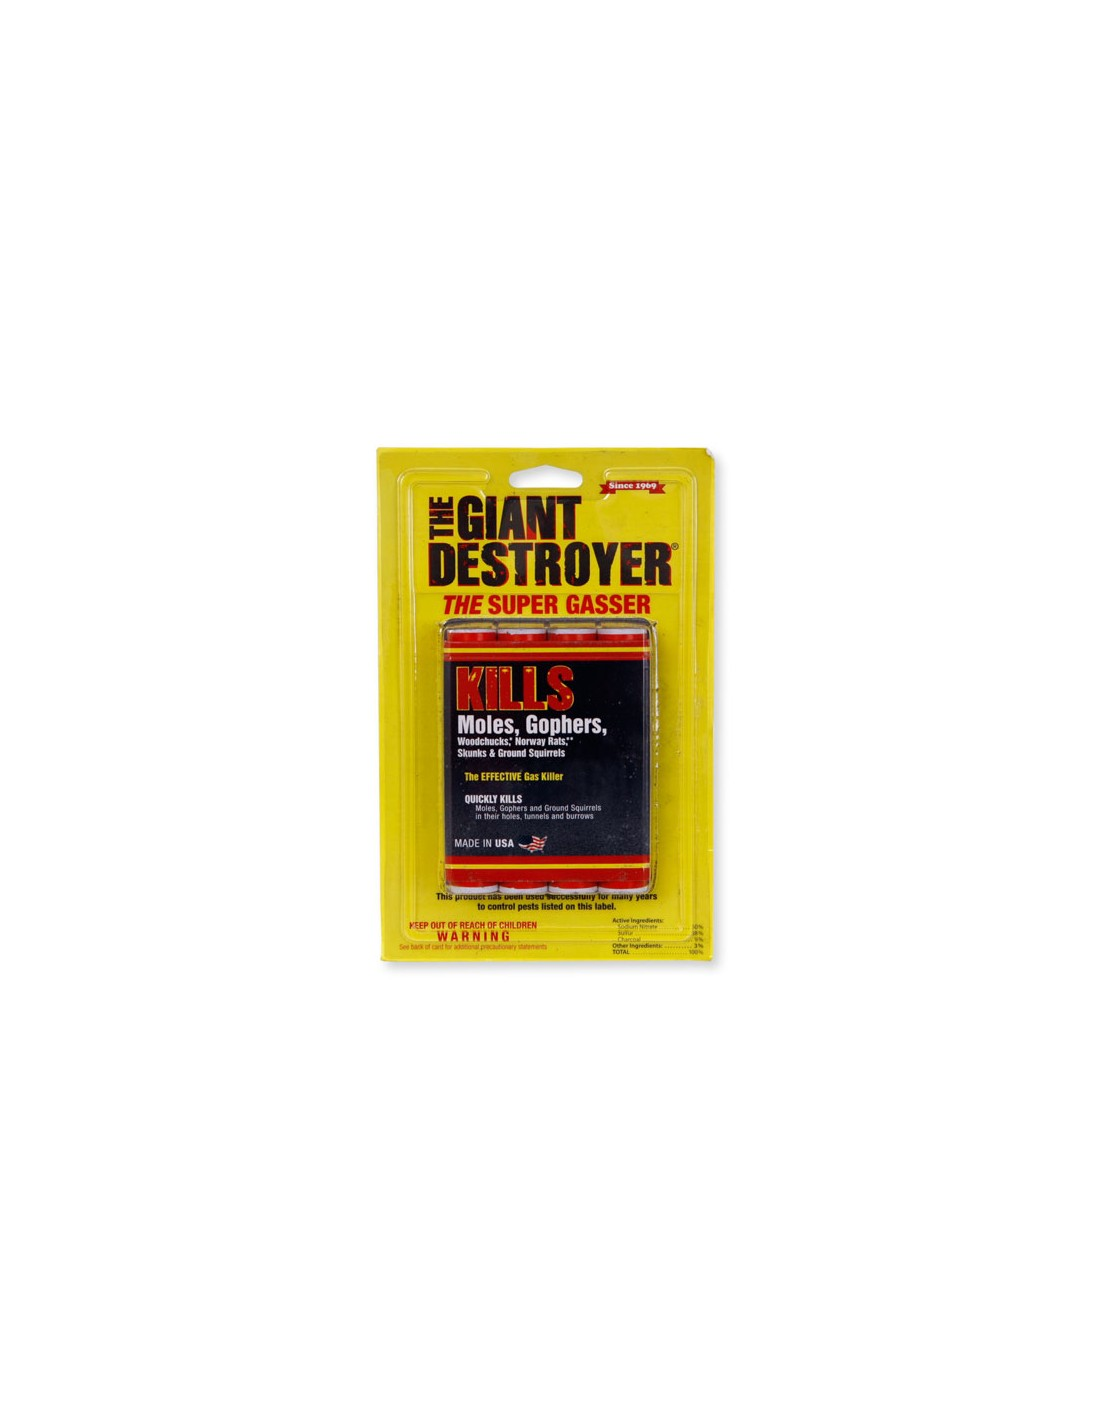 Can we use the Giant Destroyer in a skunk den under the front step of our house (against the foundation)?